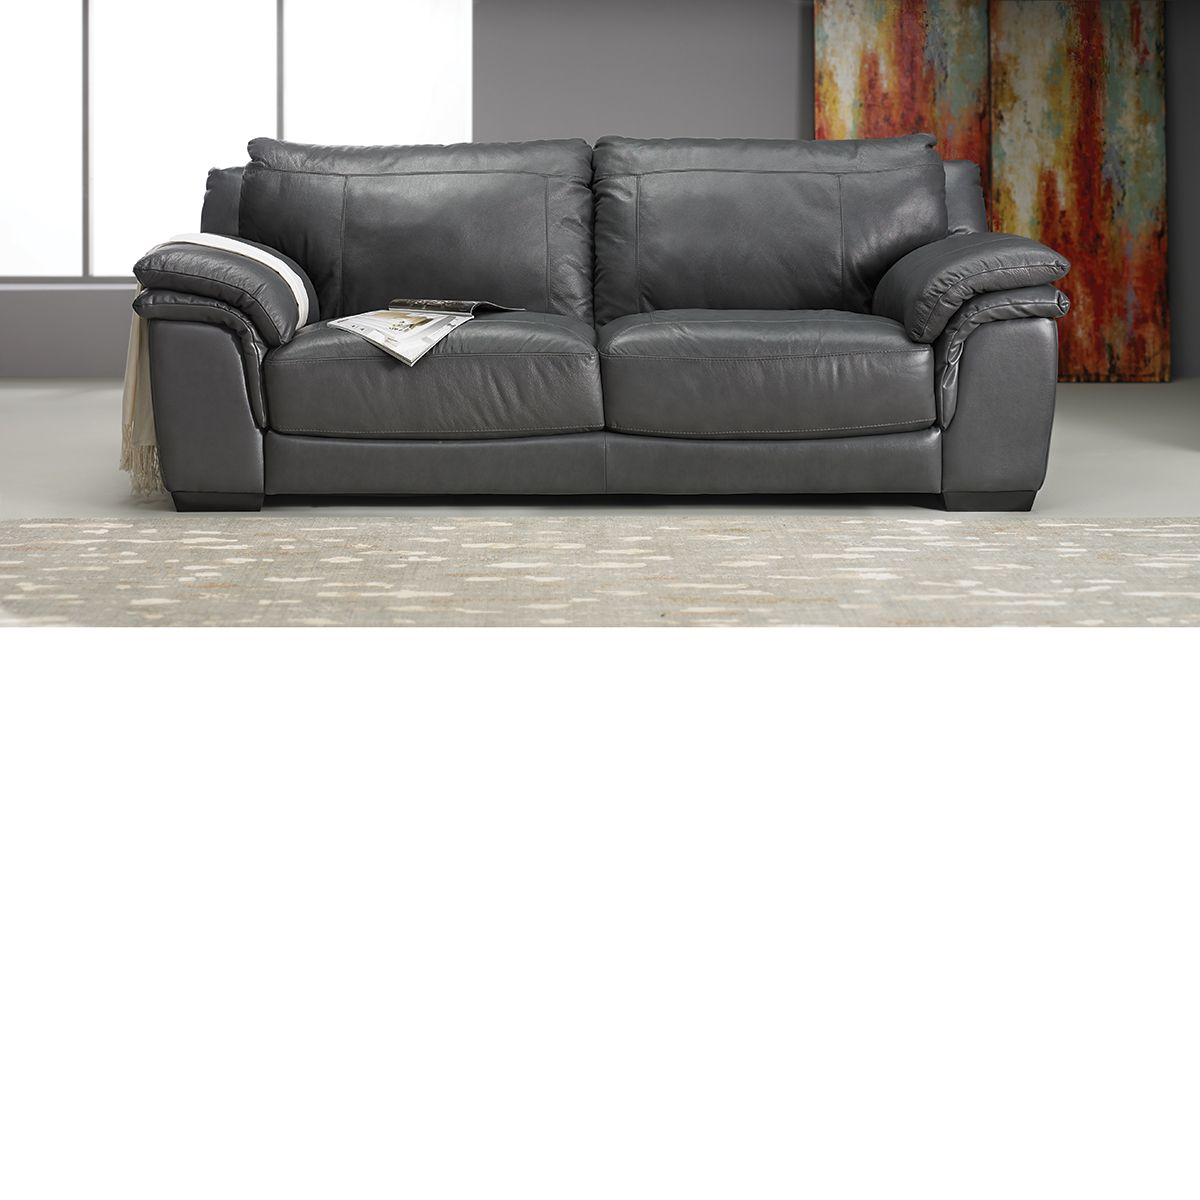 Merveilleux The Dump Furniture   Graphite Leather Sofa